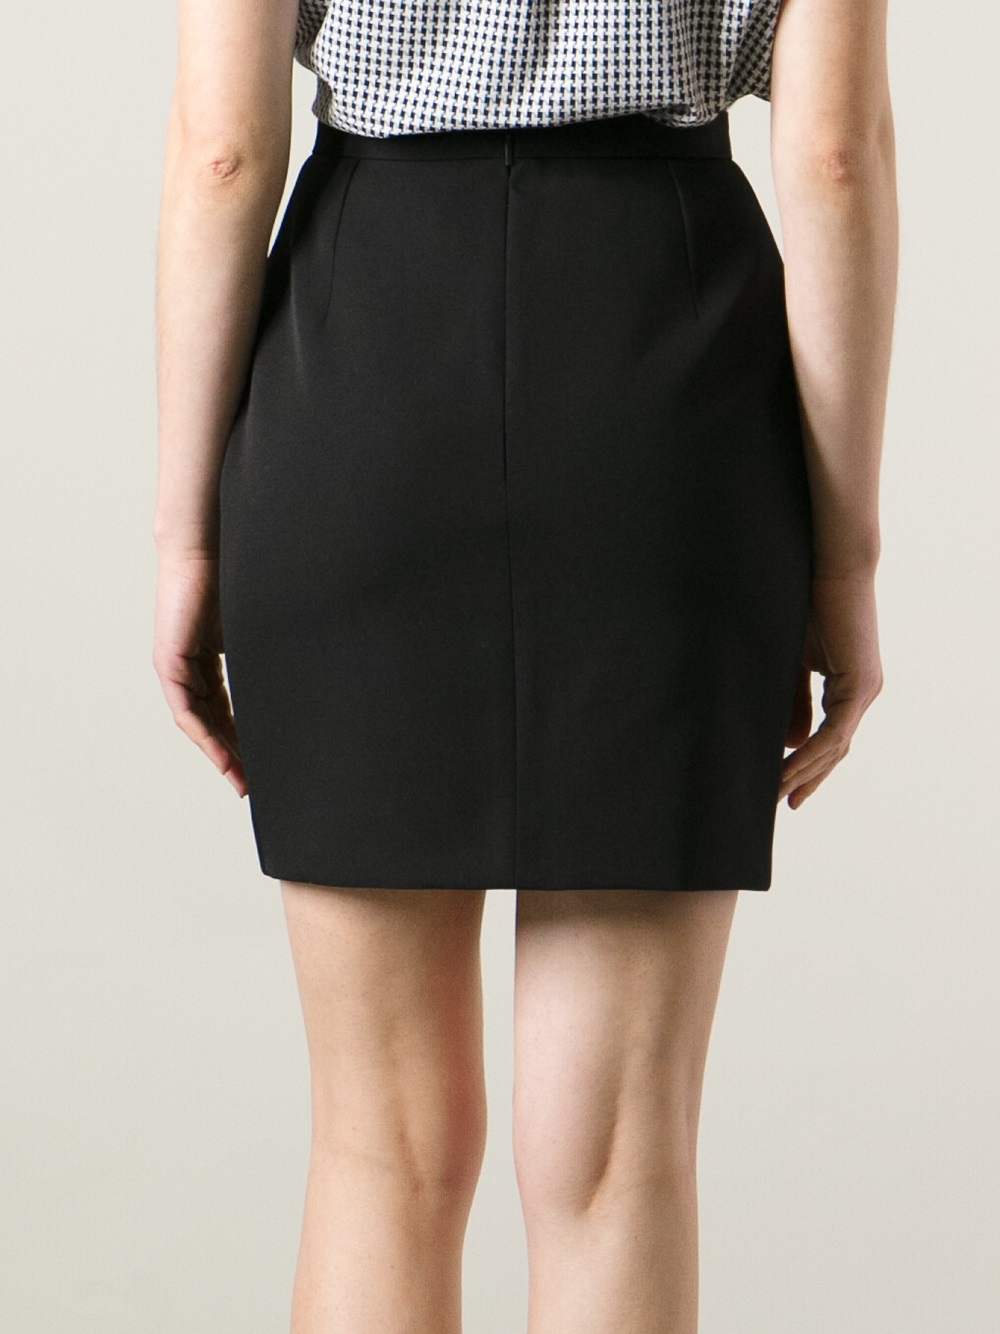 Short Pencil Skirt Black | Jill Dress